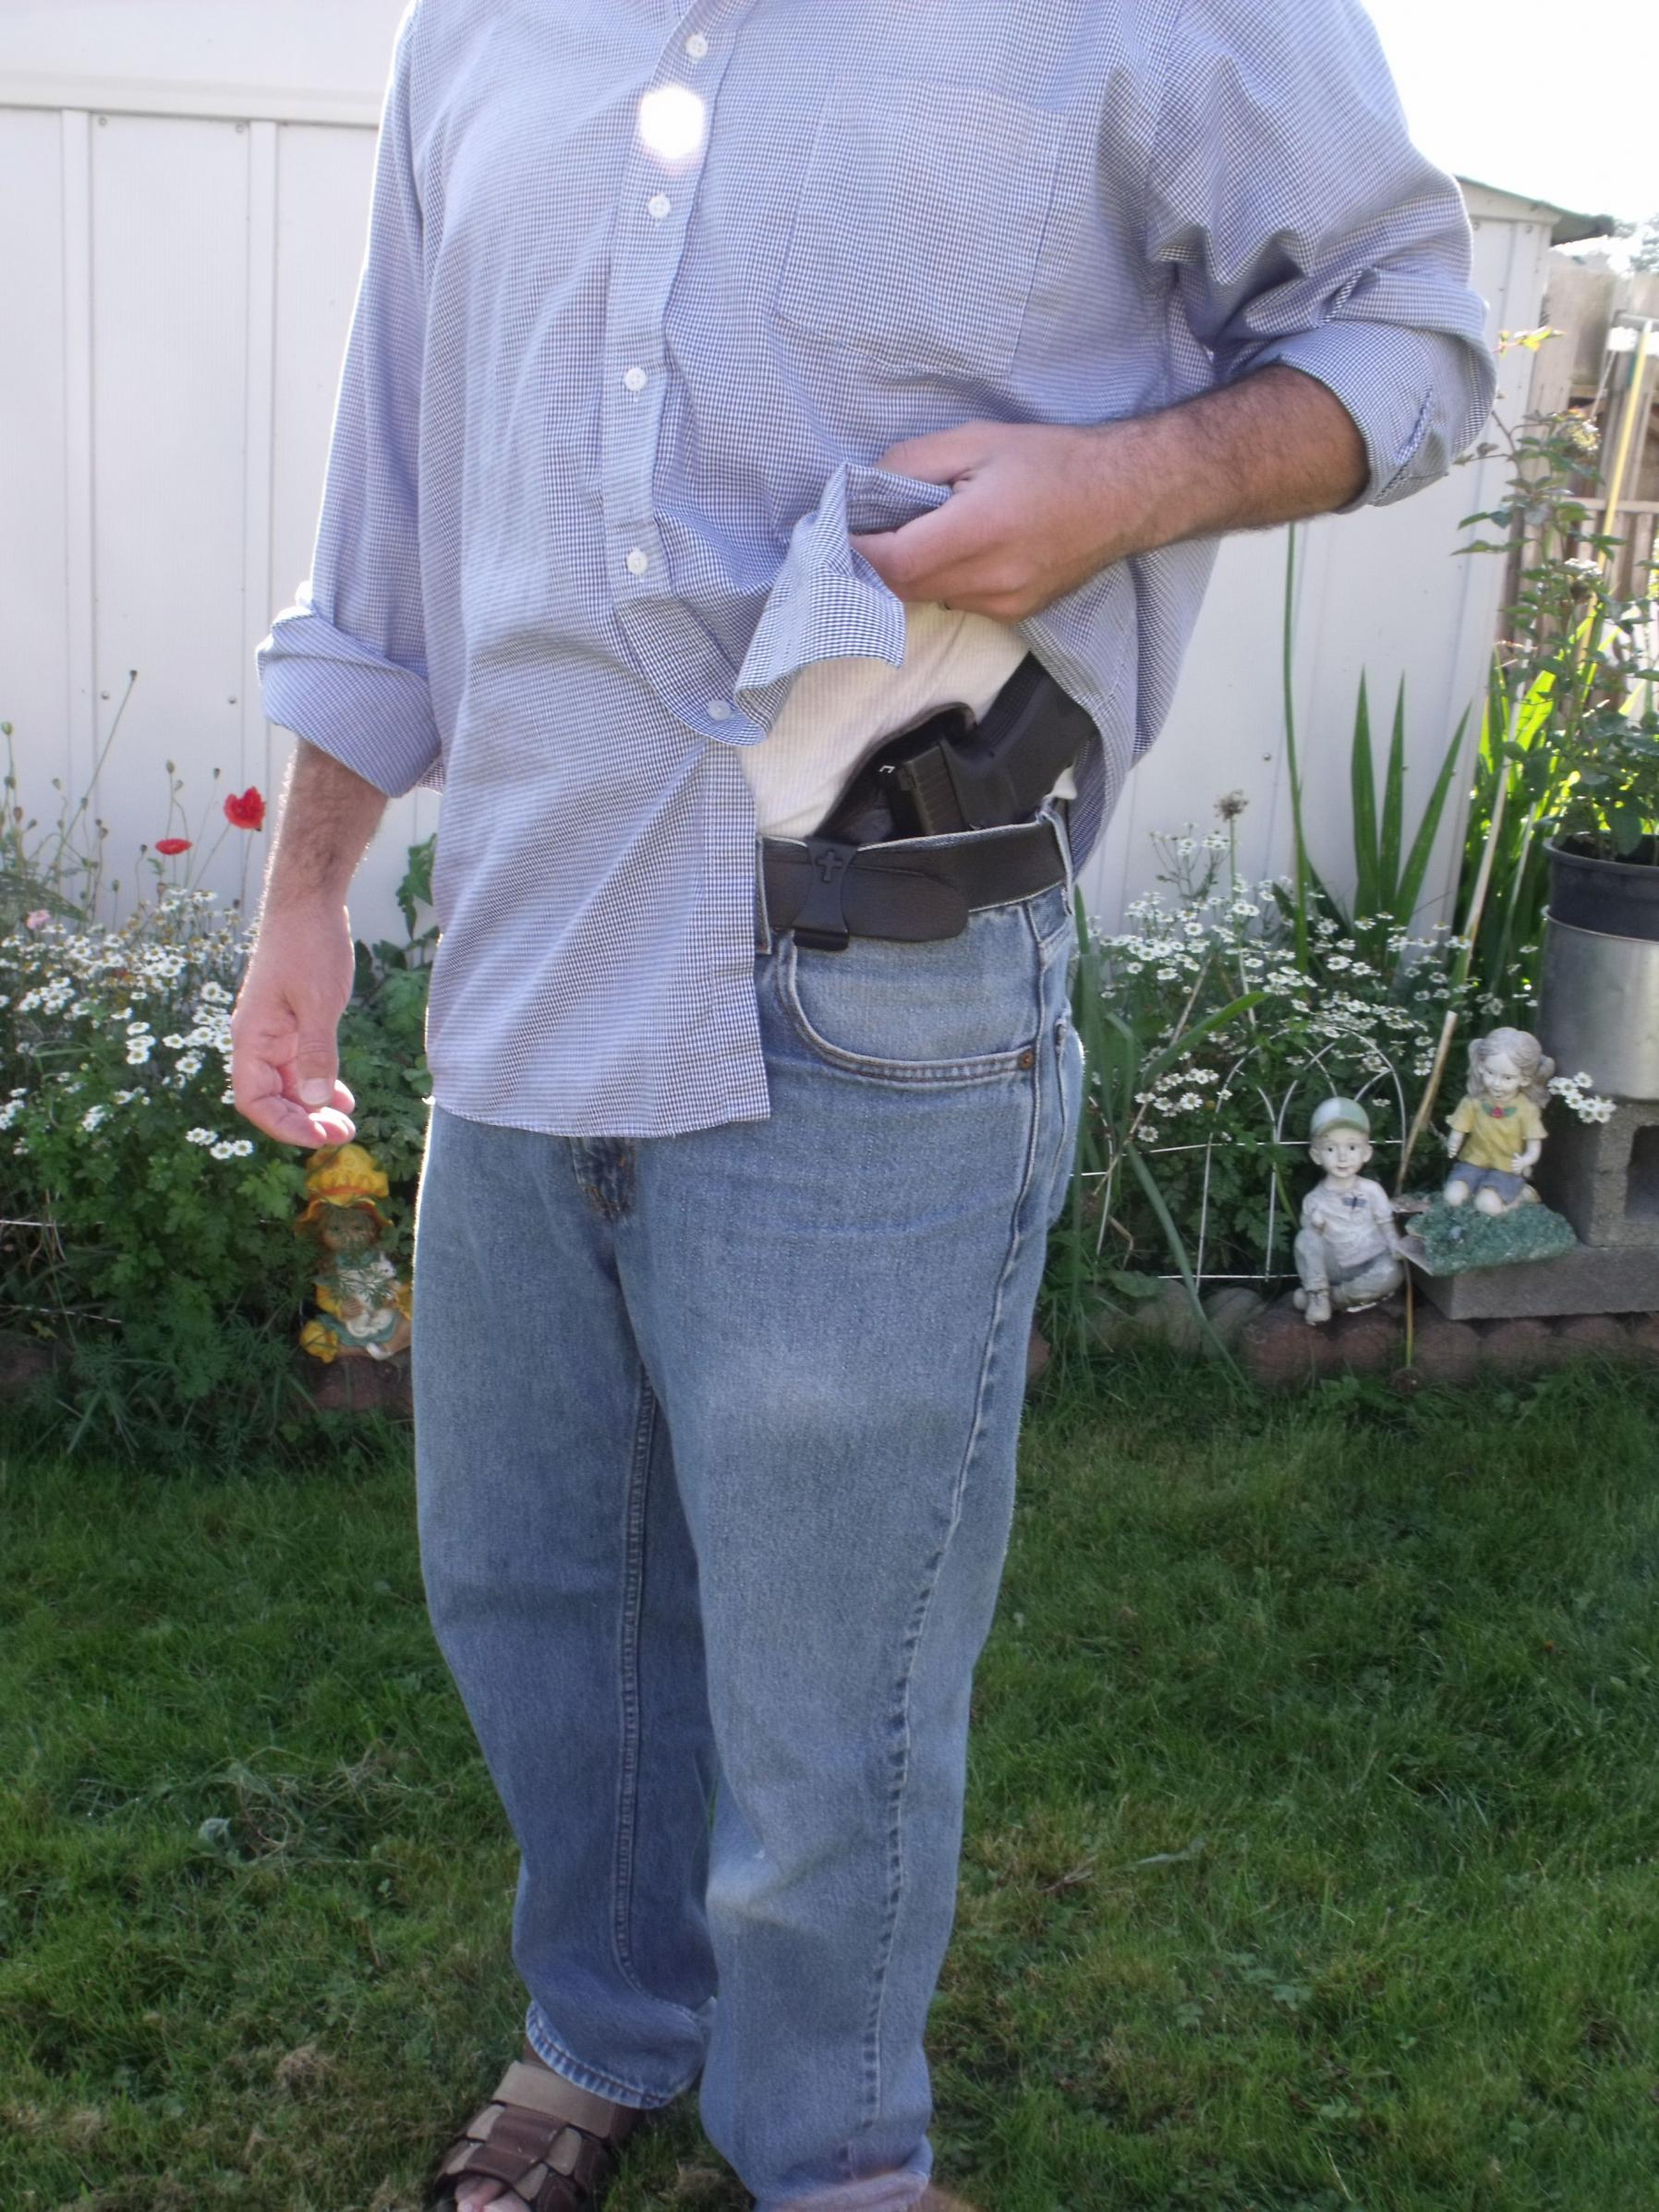 Let's See Your Pic's - How You Carry Concealed.-2010_0114val20002.jpg